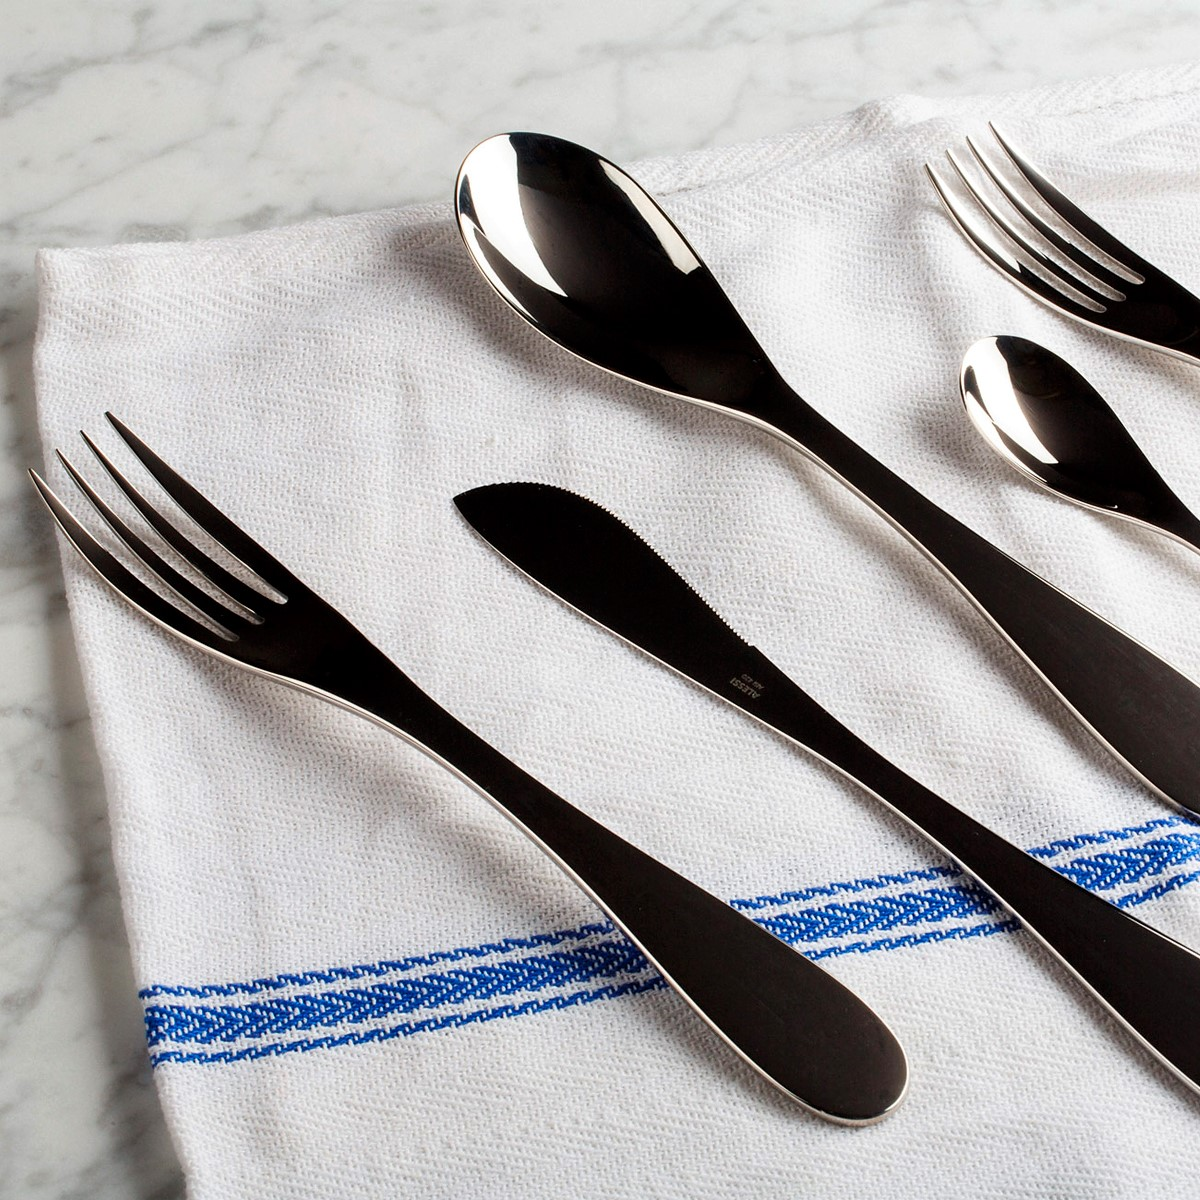 Alessi - Eat it Cutlery 2